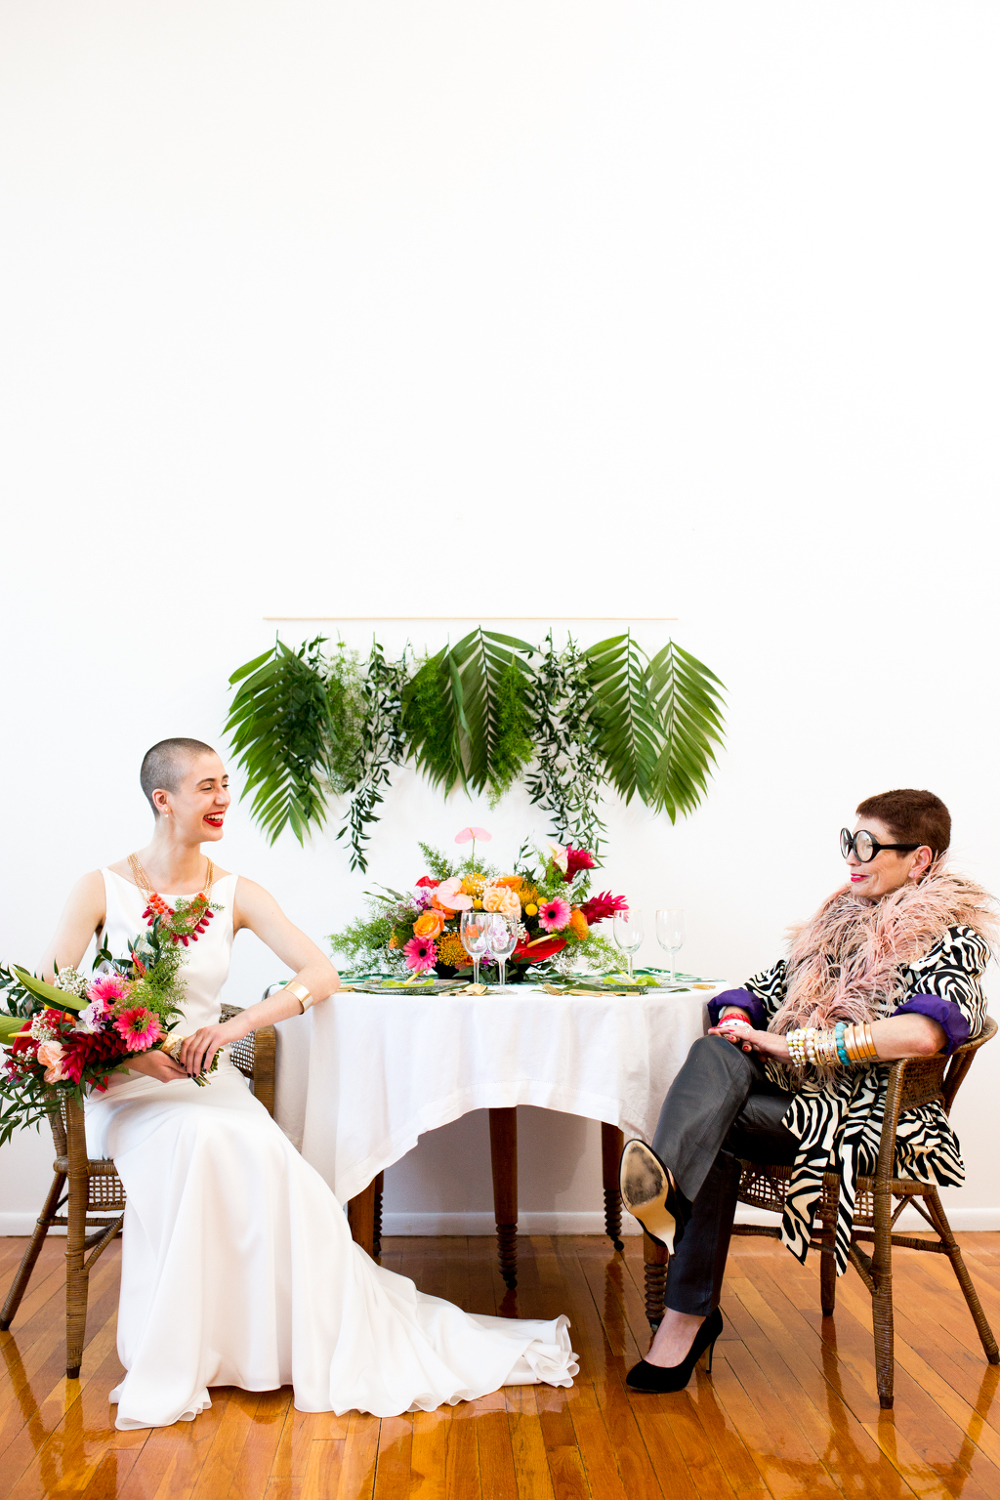 DARE TO BE DIFFERENT IRIS APFEL INSPIRED BRIDAL